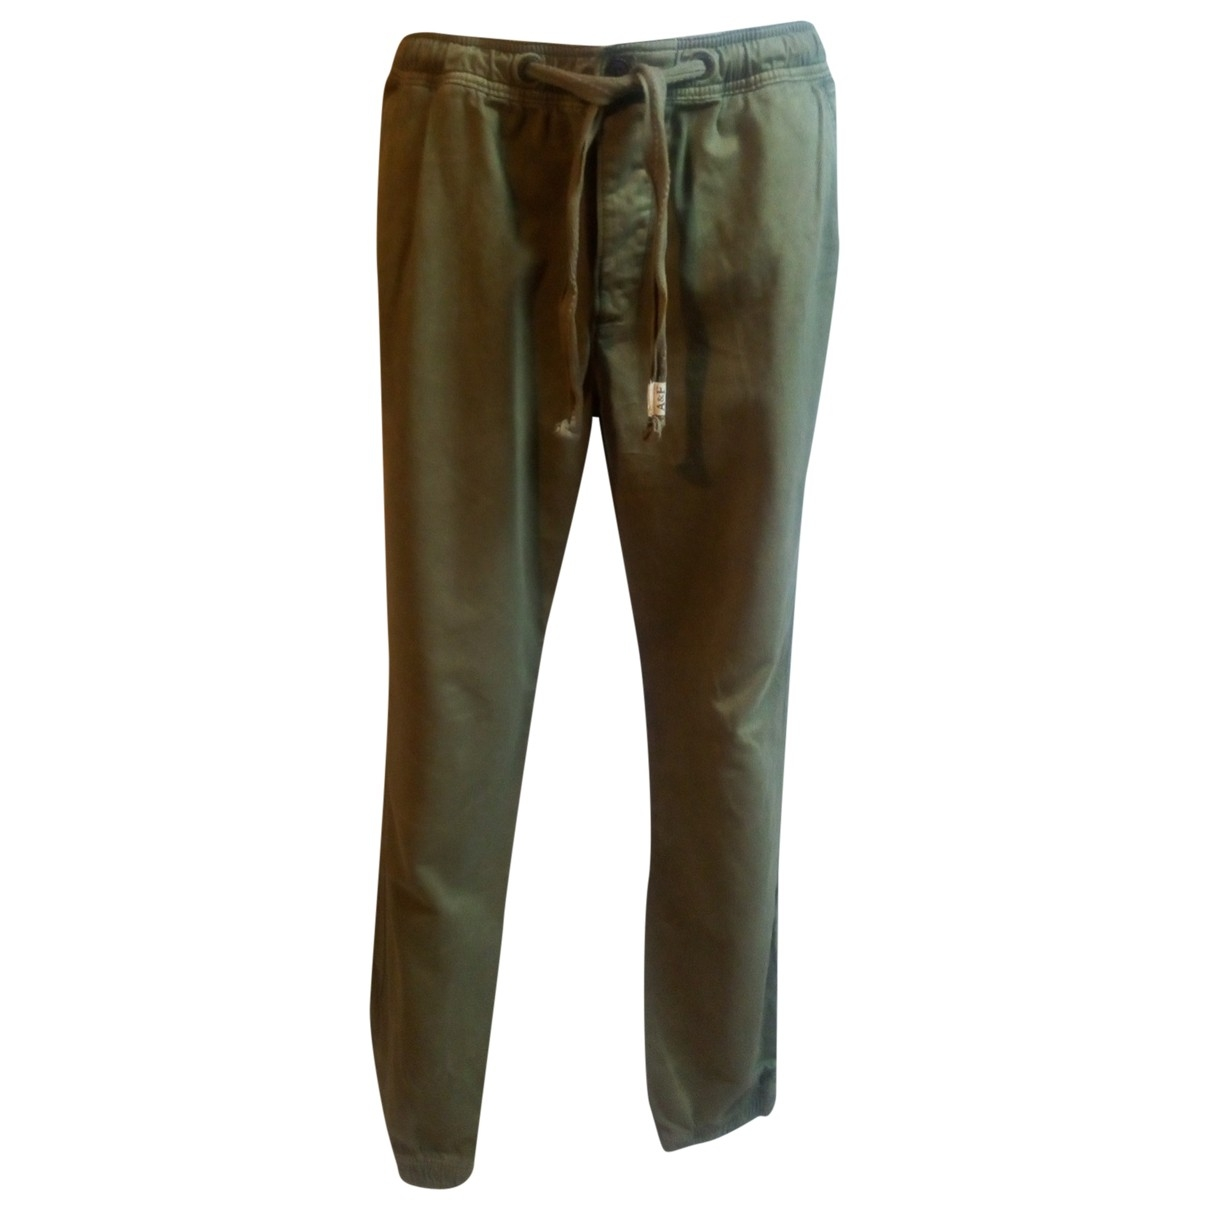 Abercrombie & Fitch \N Green Cotton Trousers for Men L International